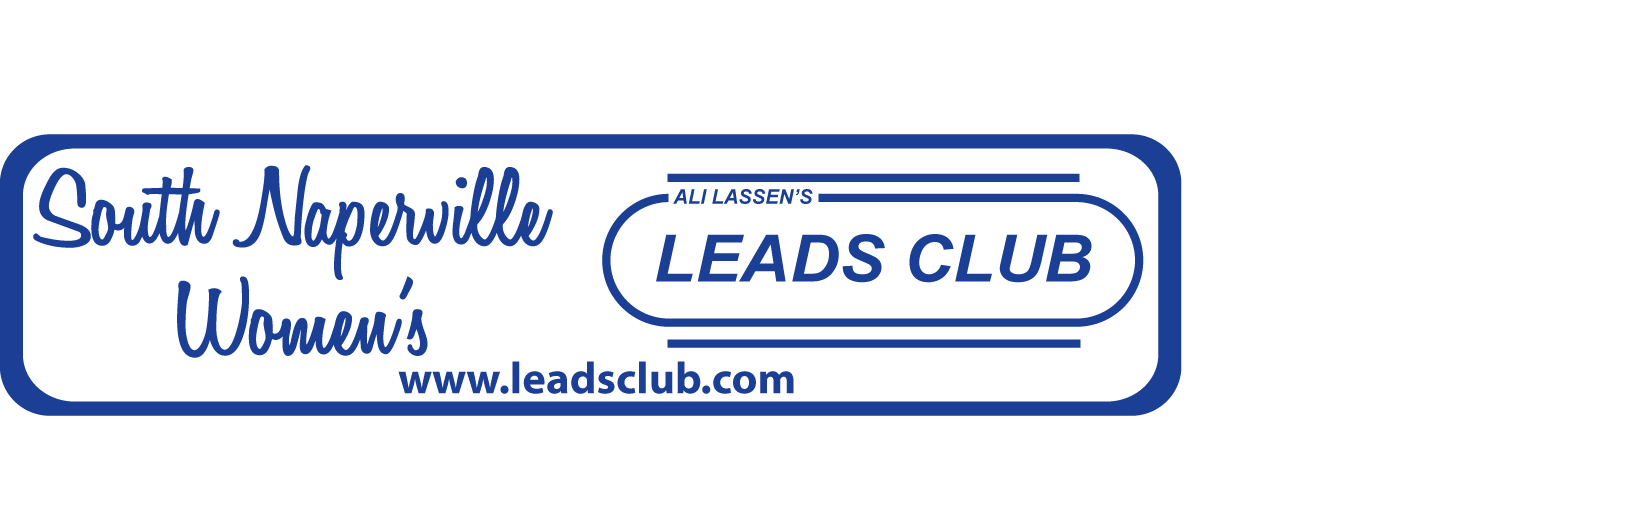 South Naperville Women's Leads Club